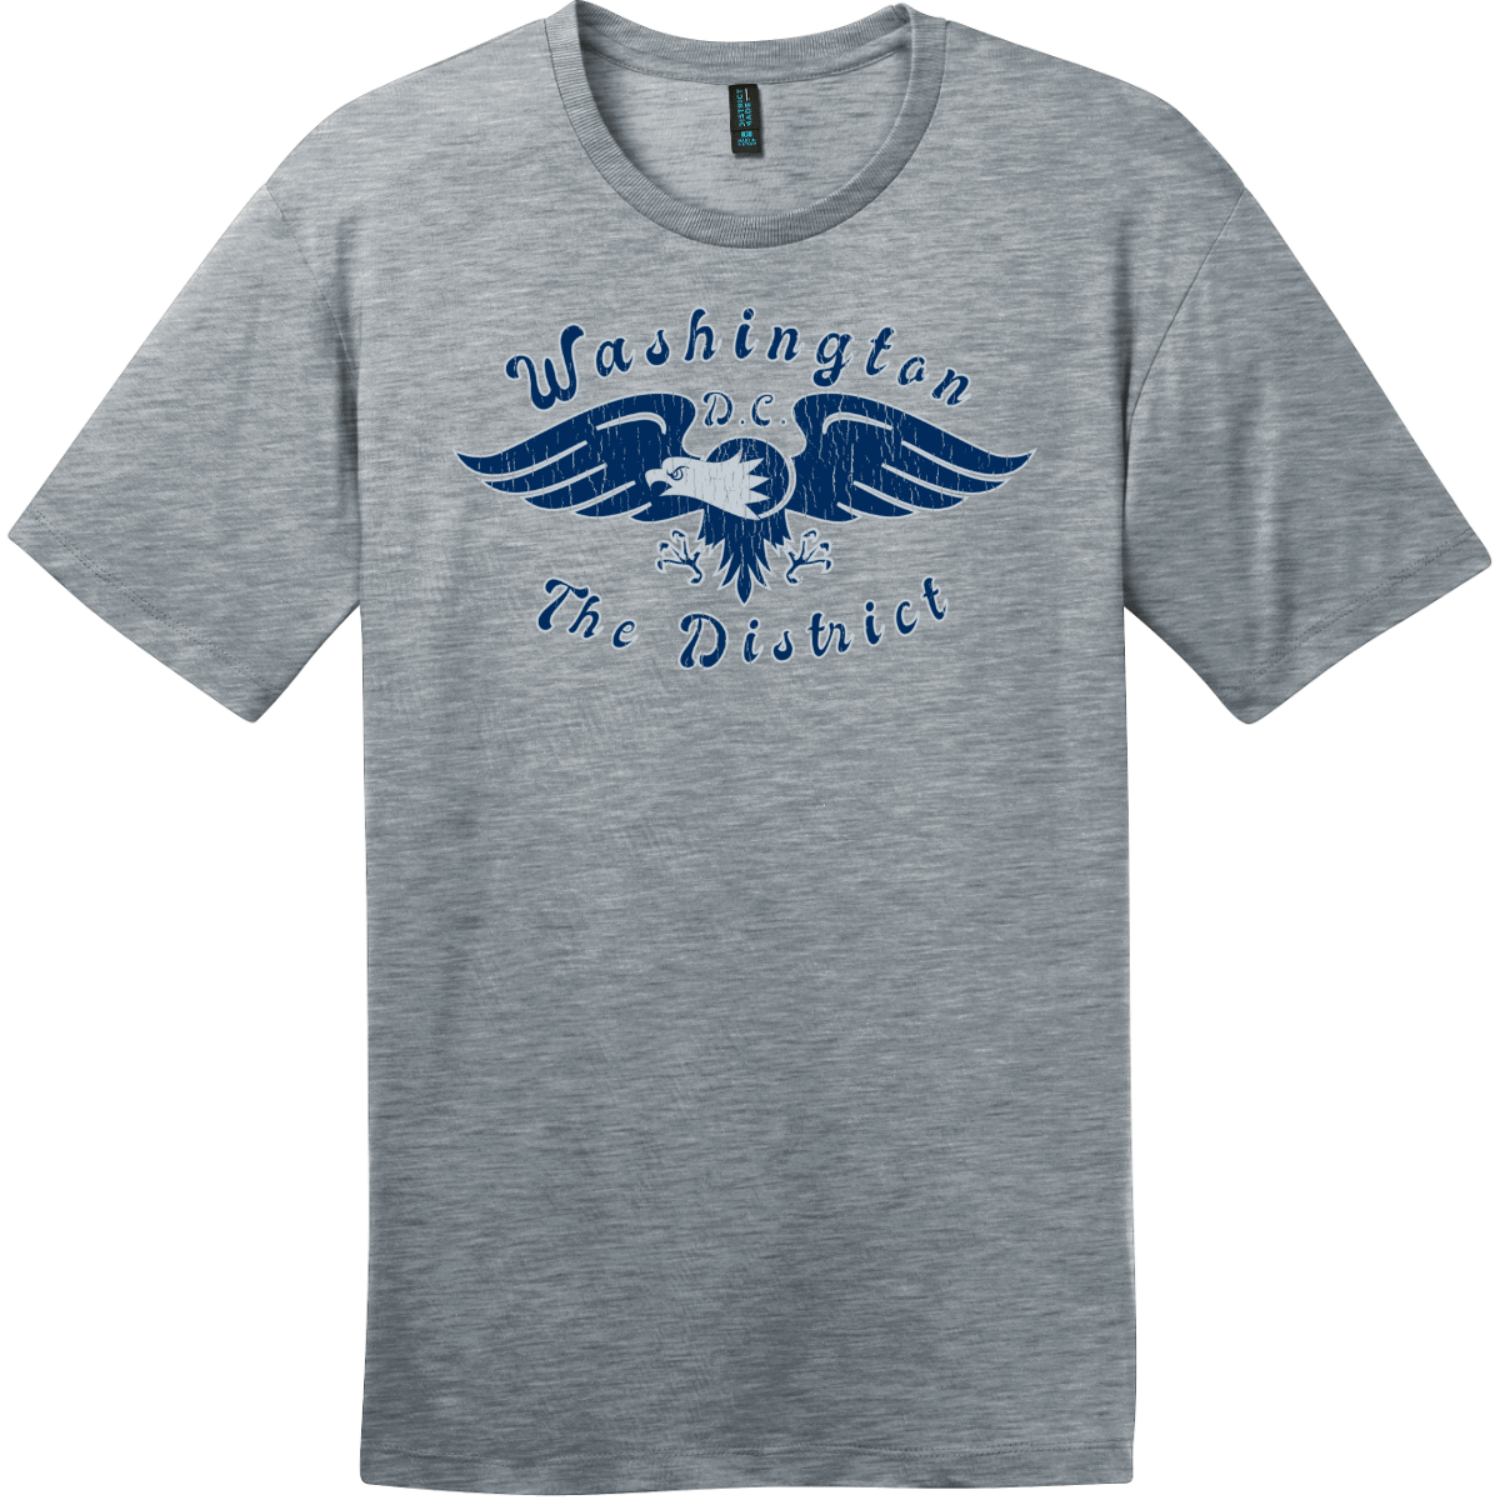 Washington DC The District Eagle T-Shirt Heathered Steel District Perfect Weight Tee DT104